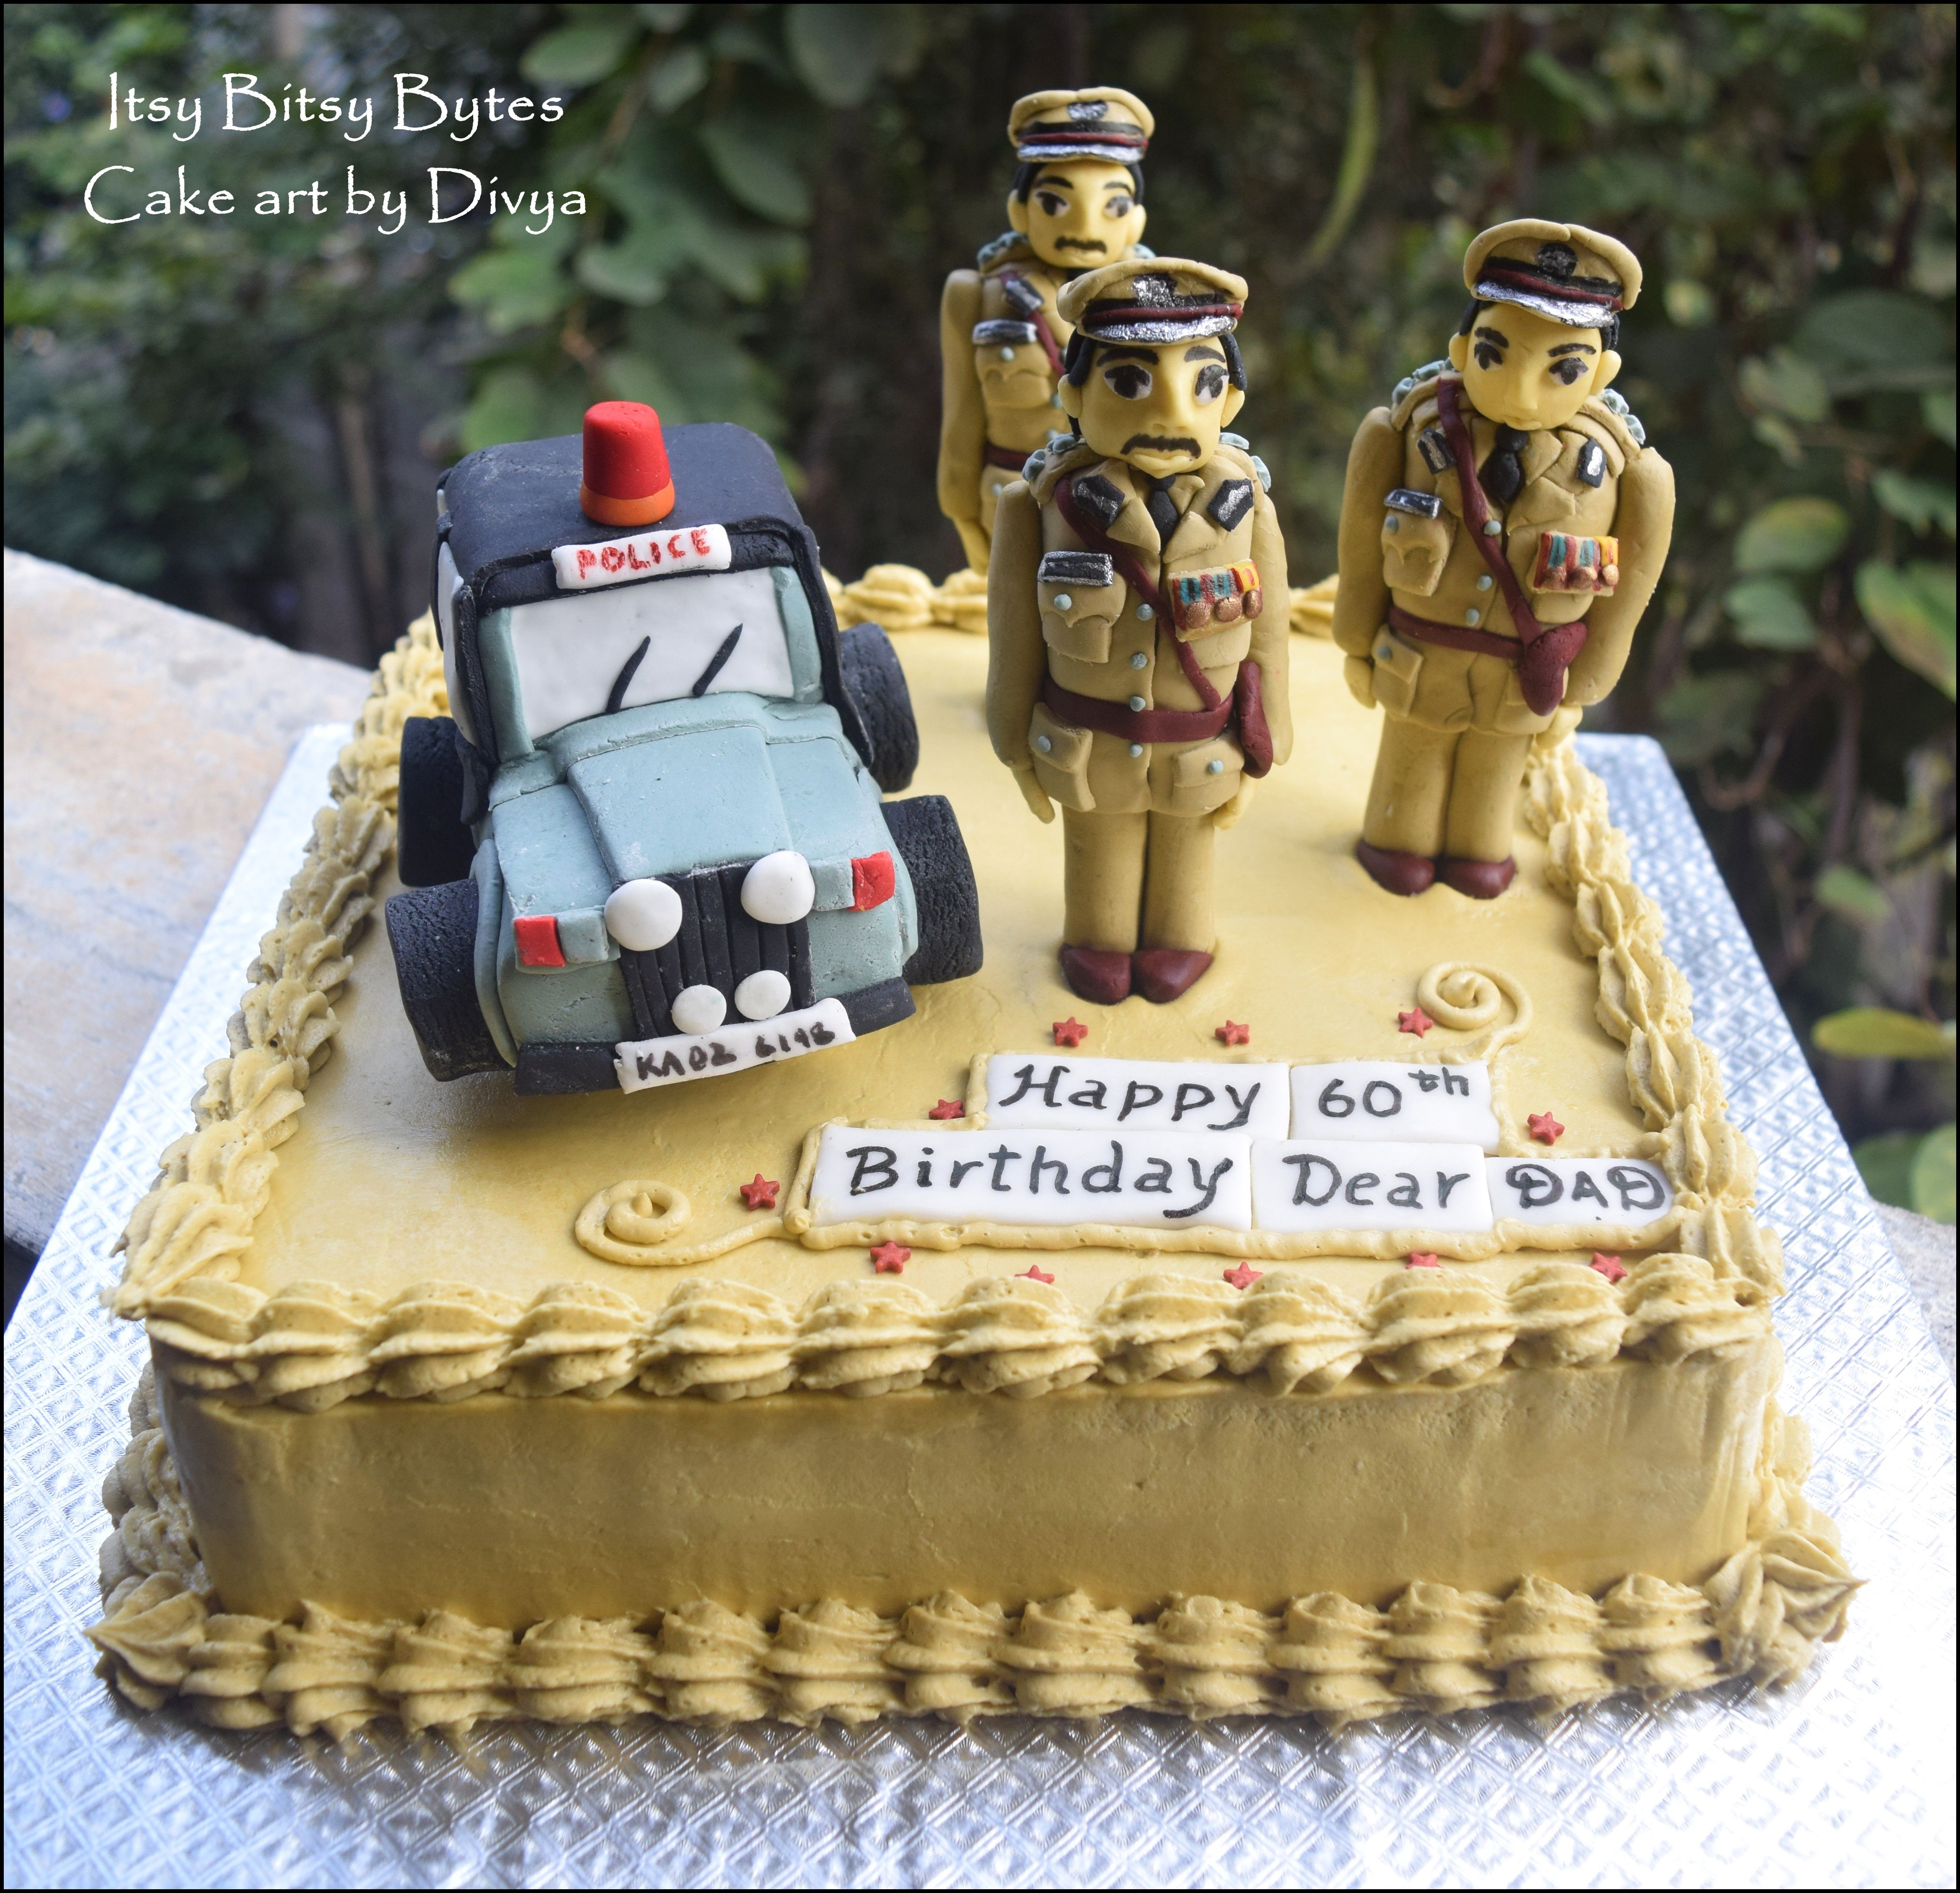 An Indian Police Cake For The 60th Birthday Of A Dad Who